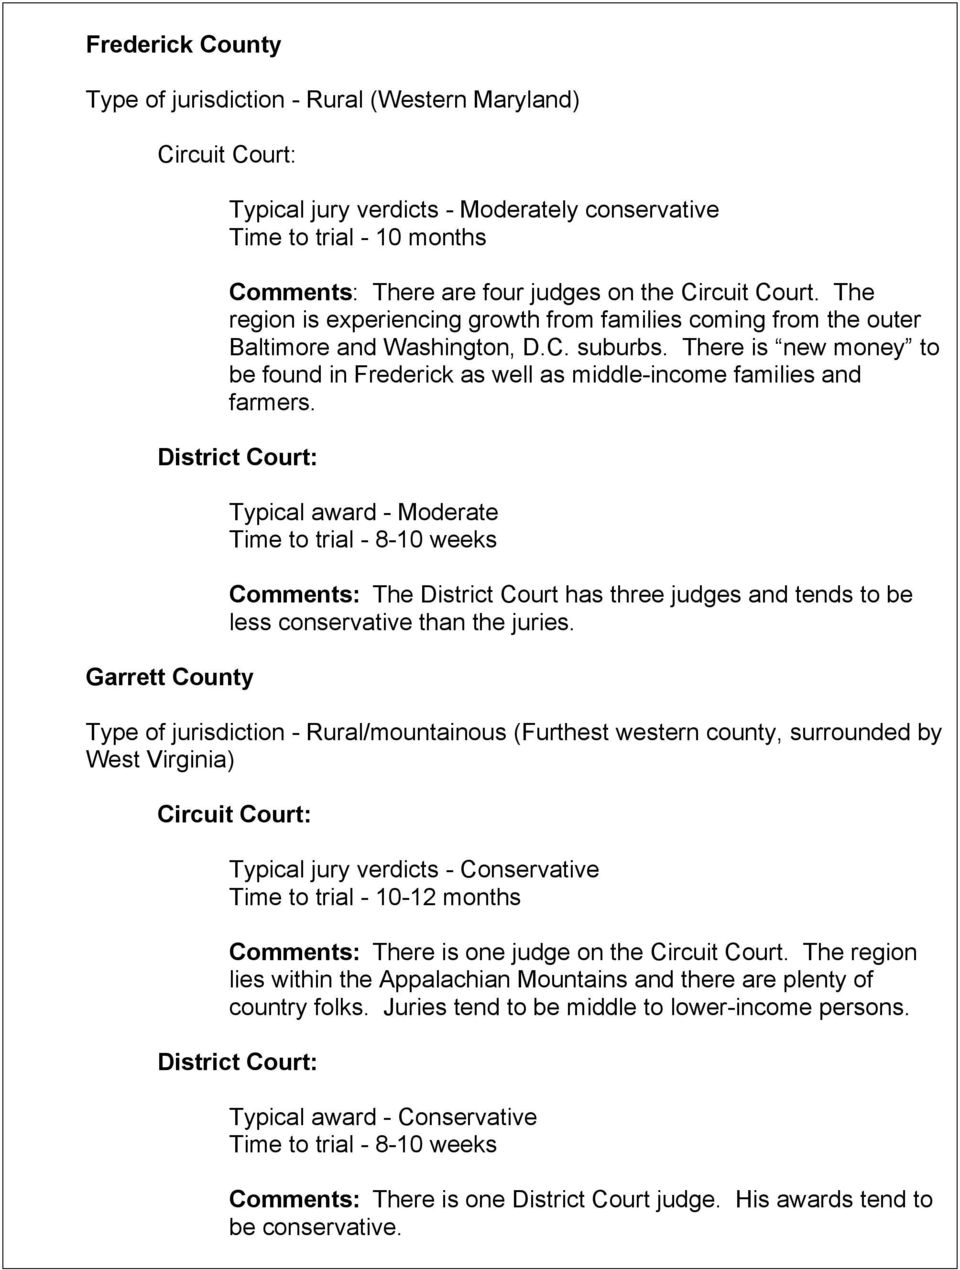 Garrett County Typical award - Moderate Comments: The District Court has three judges and tends to be less conservative than the juries.